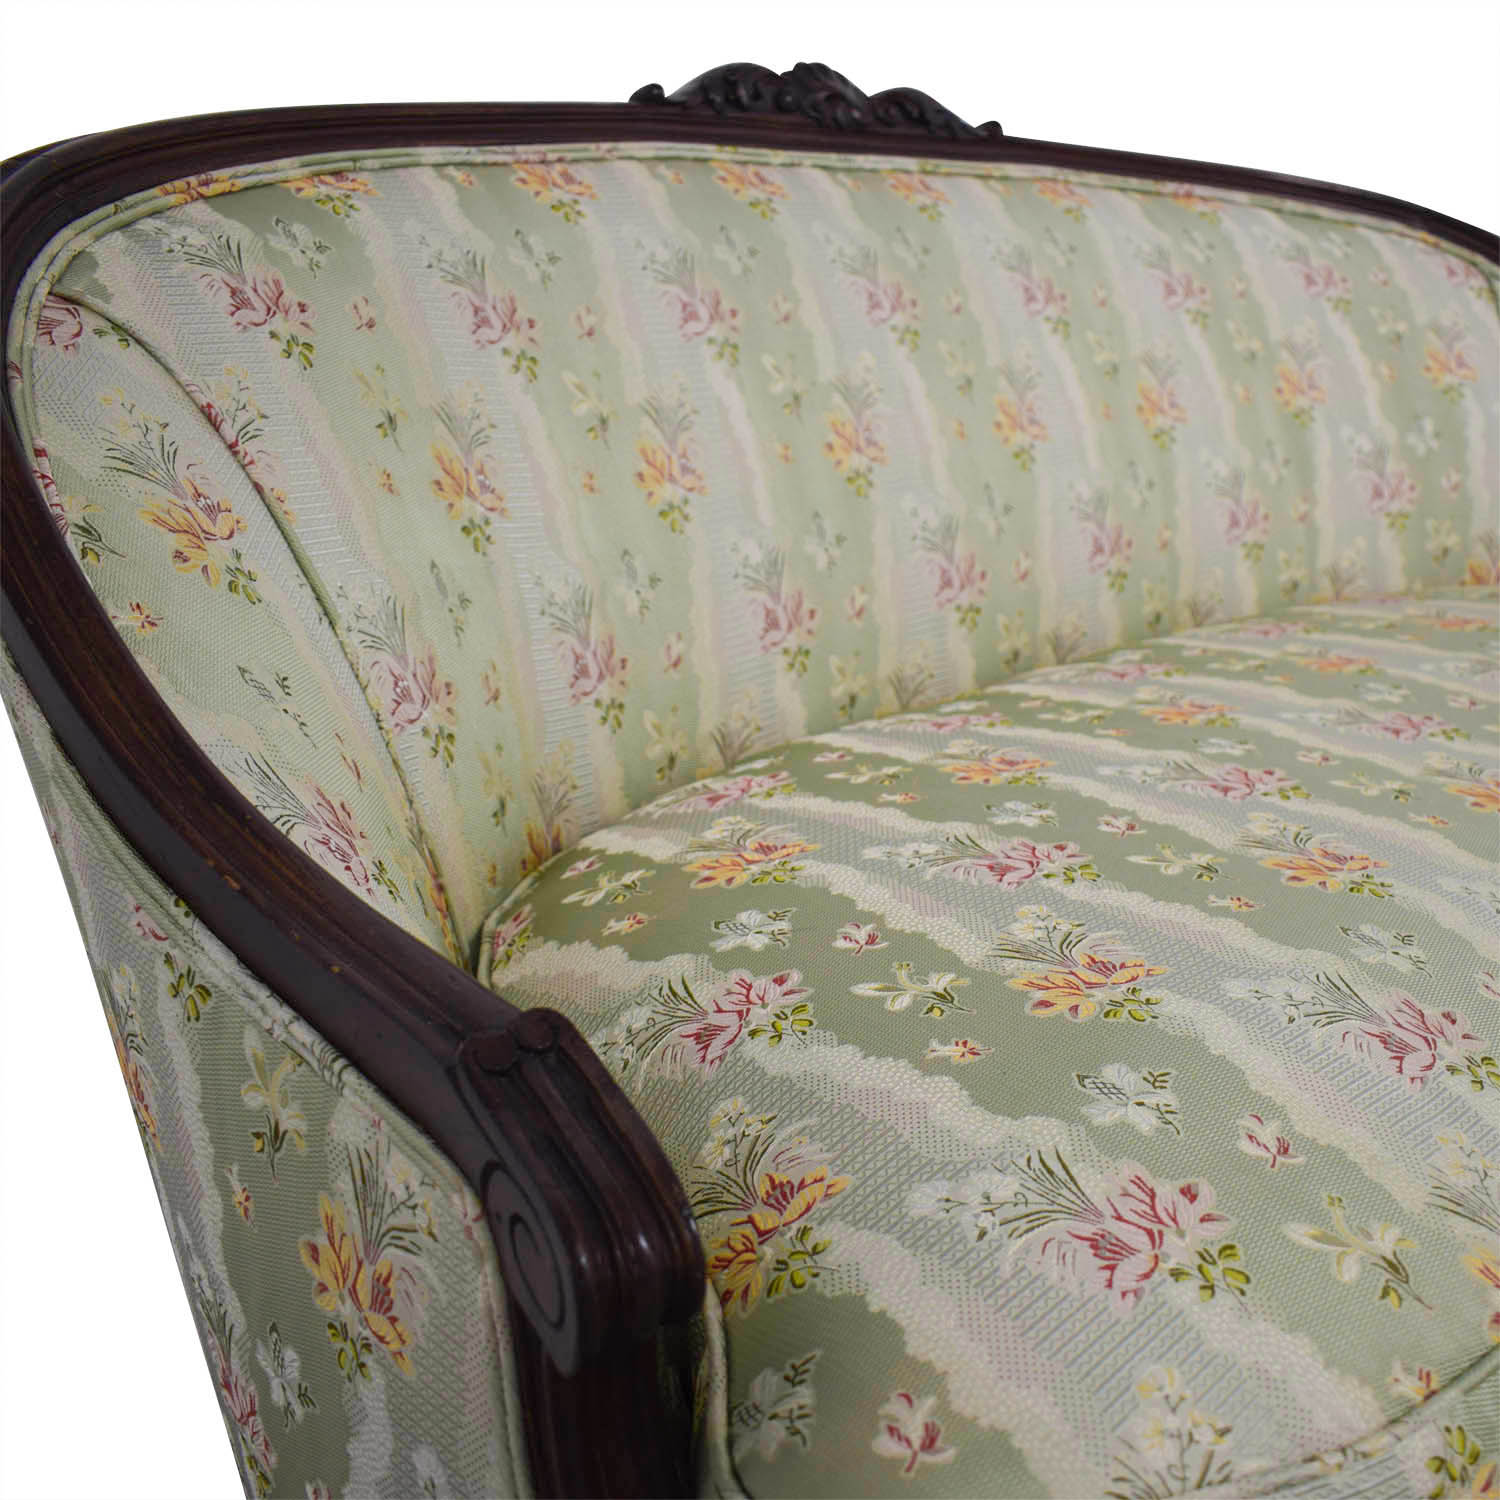 Antique French Floral Upholstered Single Cushion Loveseat sale